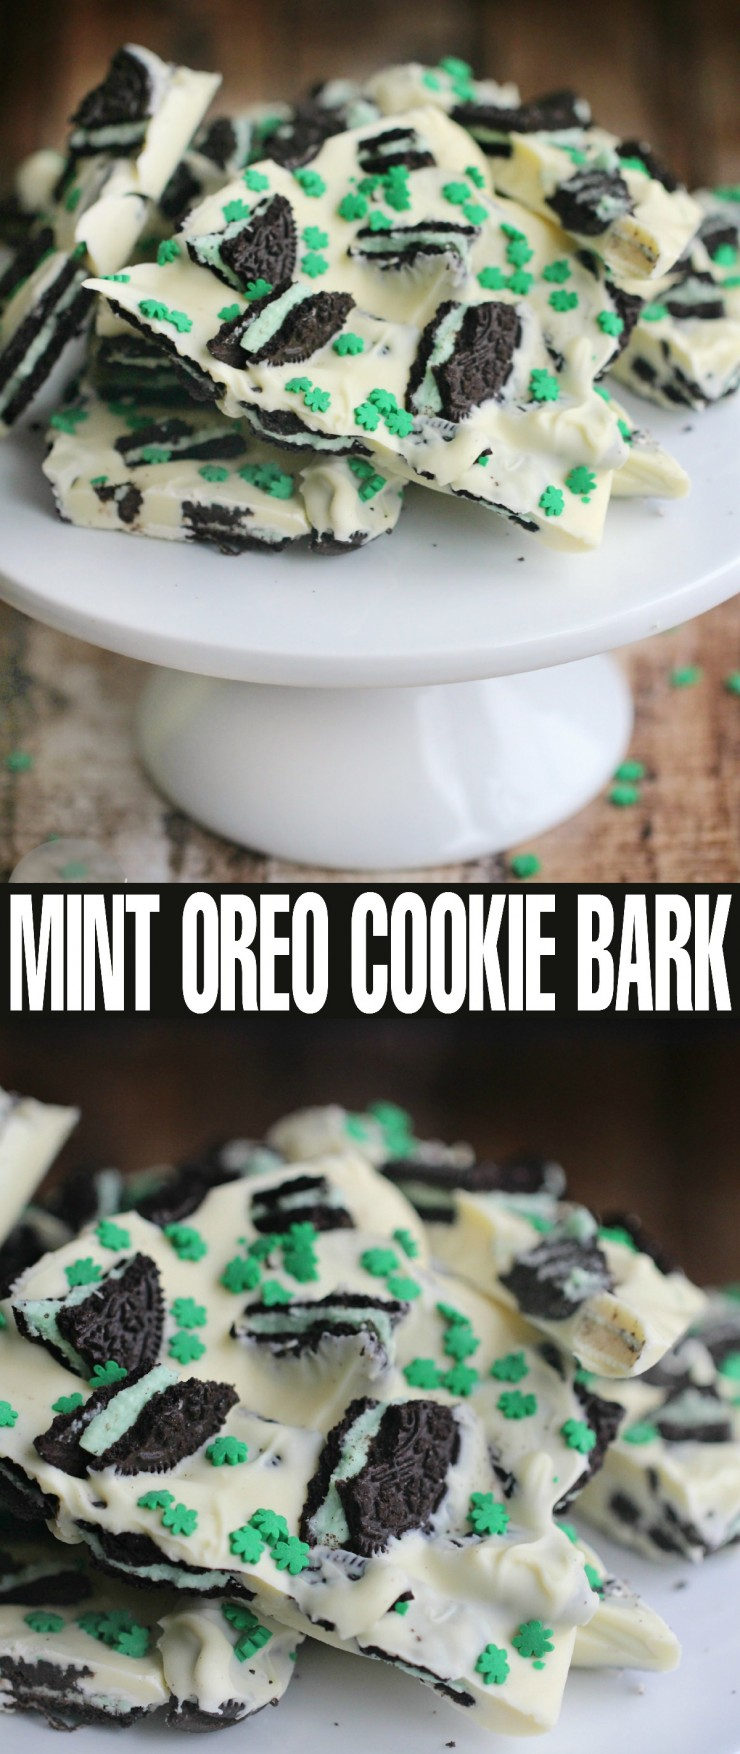 Looking for a fun and easy St. Patrick's Day inspired dessert?  Maybe something no-bake?  Check out this adorable Mint Oreo Cookie Bark made with crumbled cool mint Oreo's and white chocolate sprinkled over with cute little shamrocks.